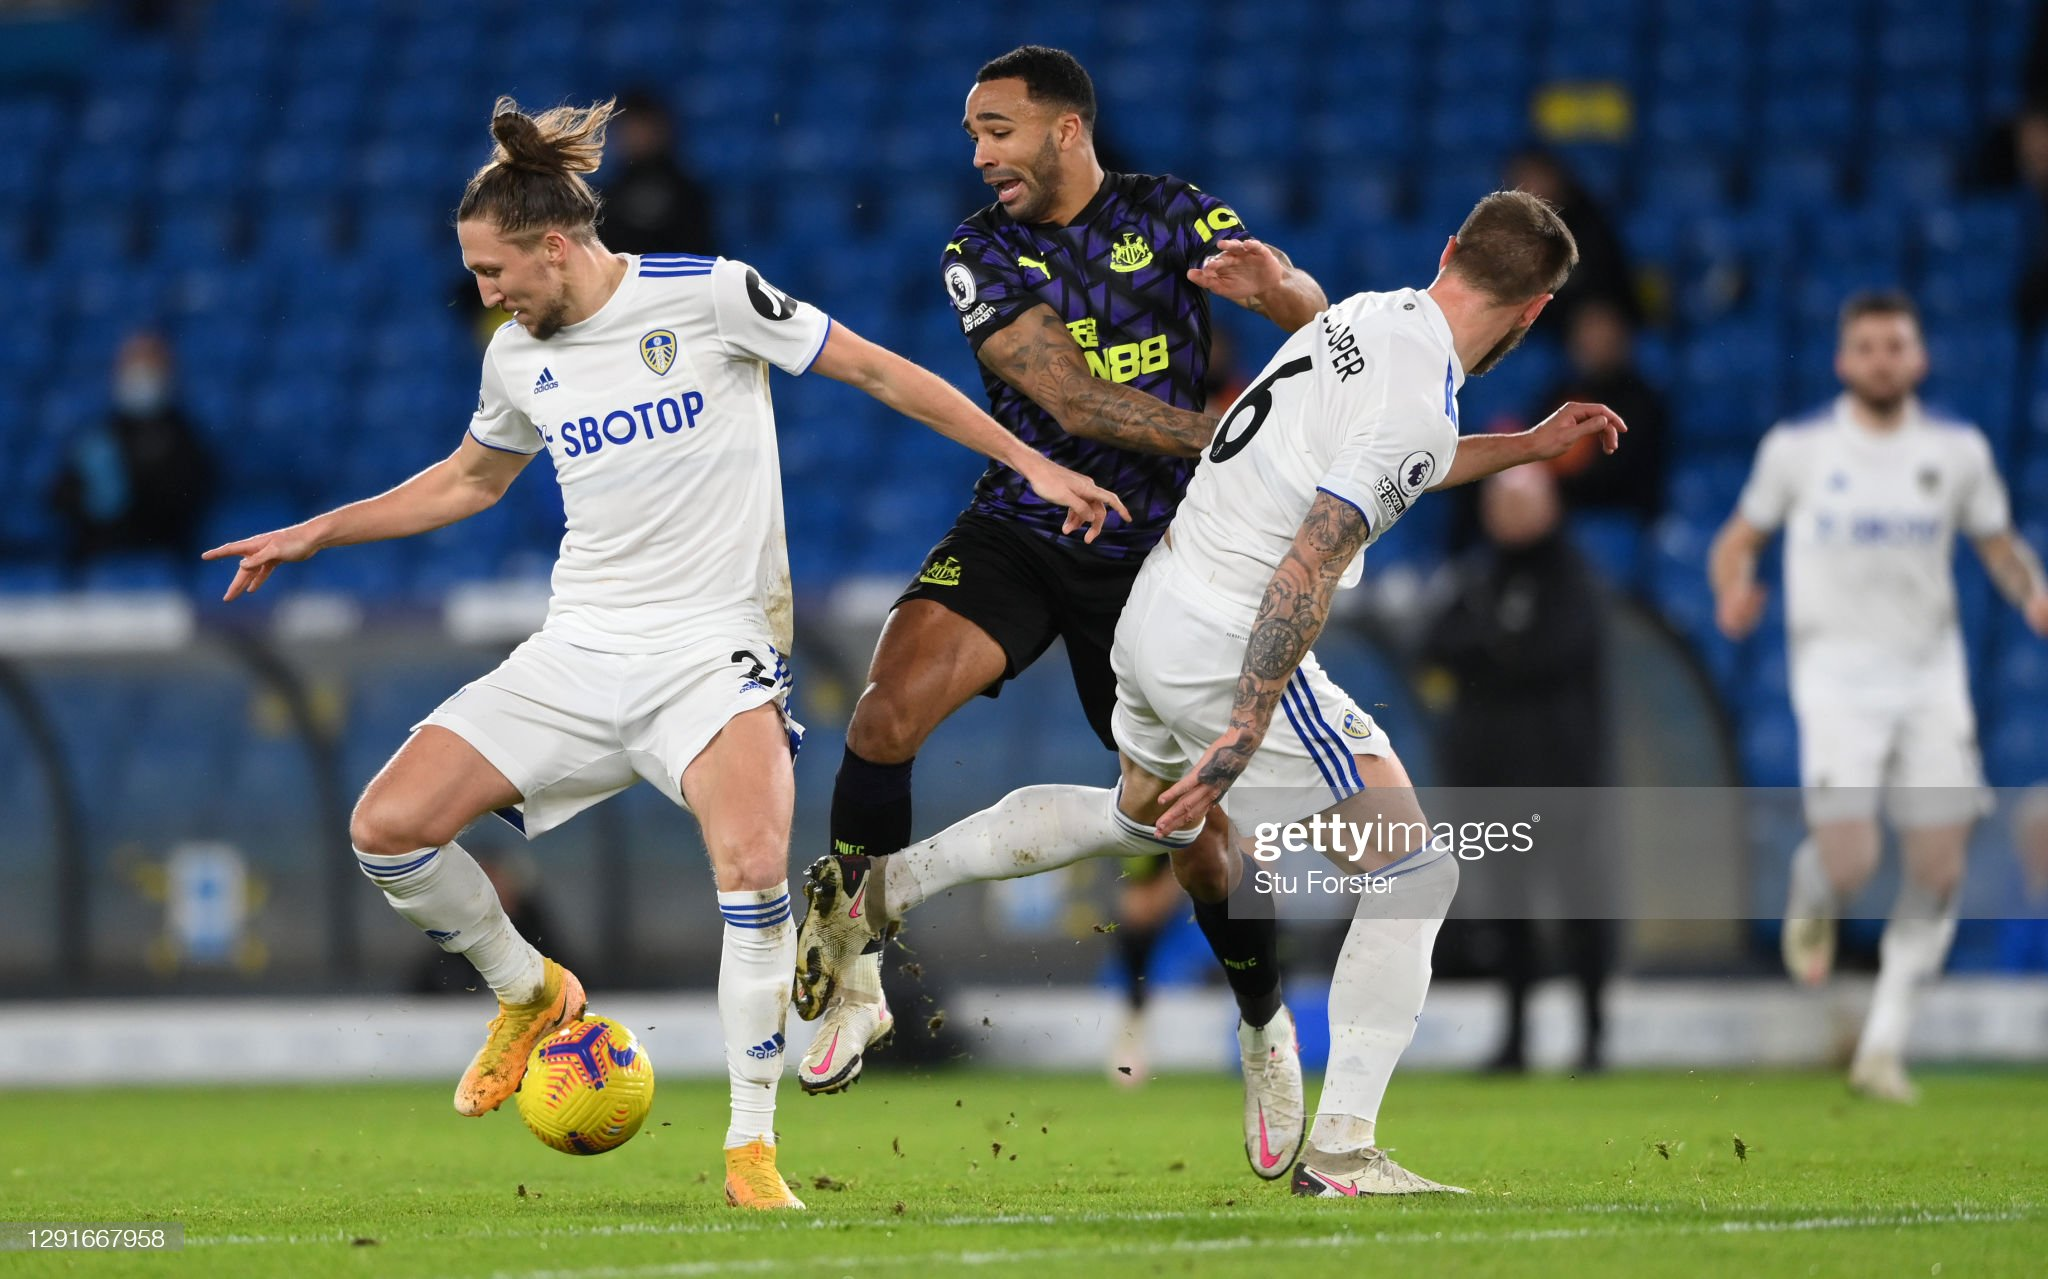 Newcastle vs Leeds preview, prediction and odds